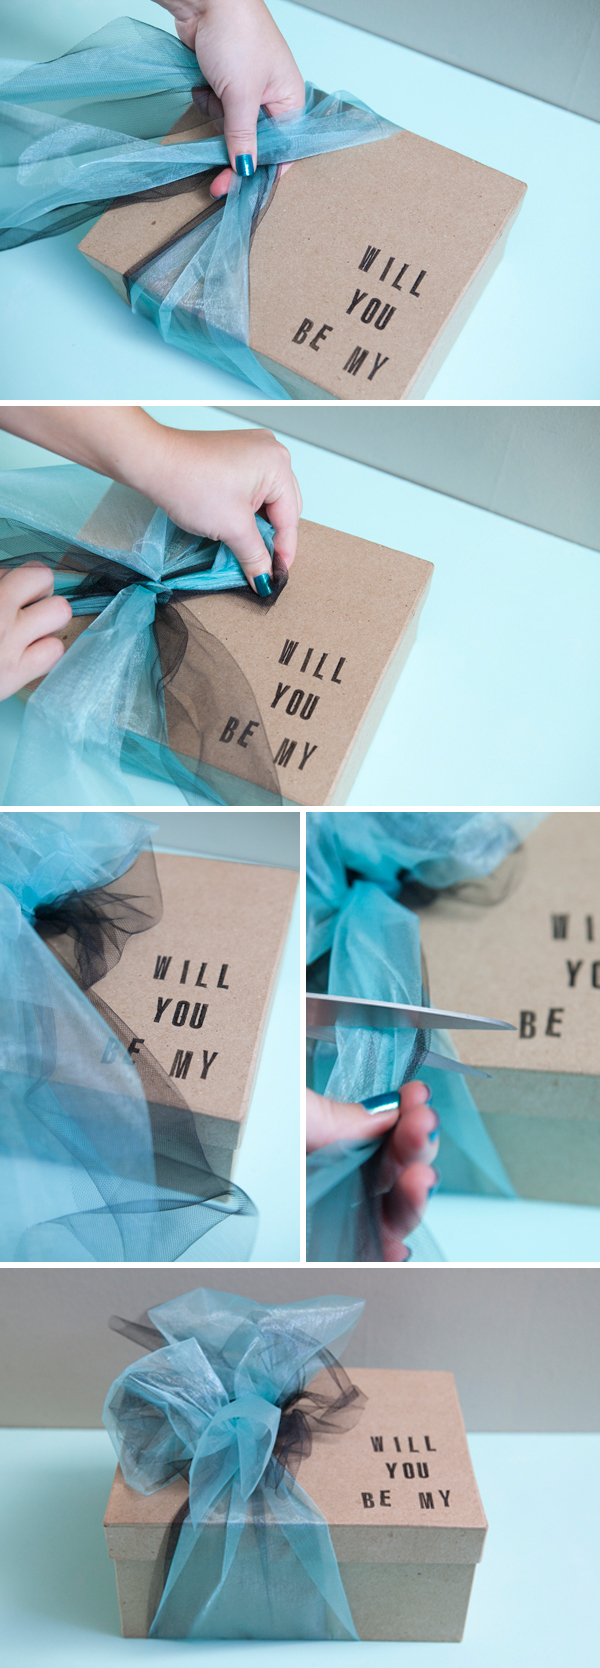 st will you be my bridesmaid box20 DIY | will you be my bridesmaid?